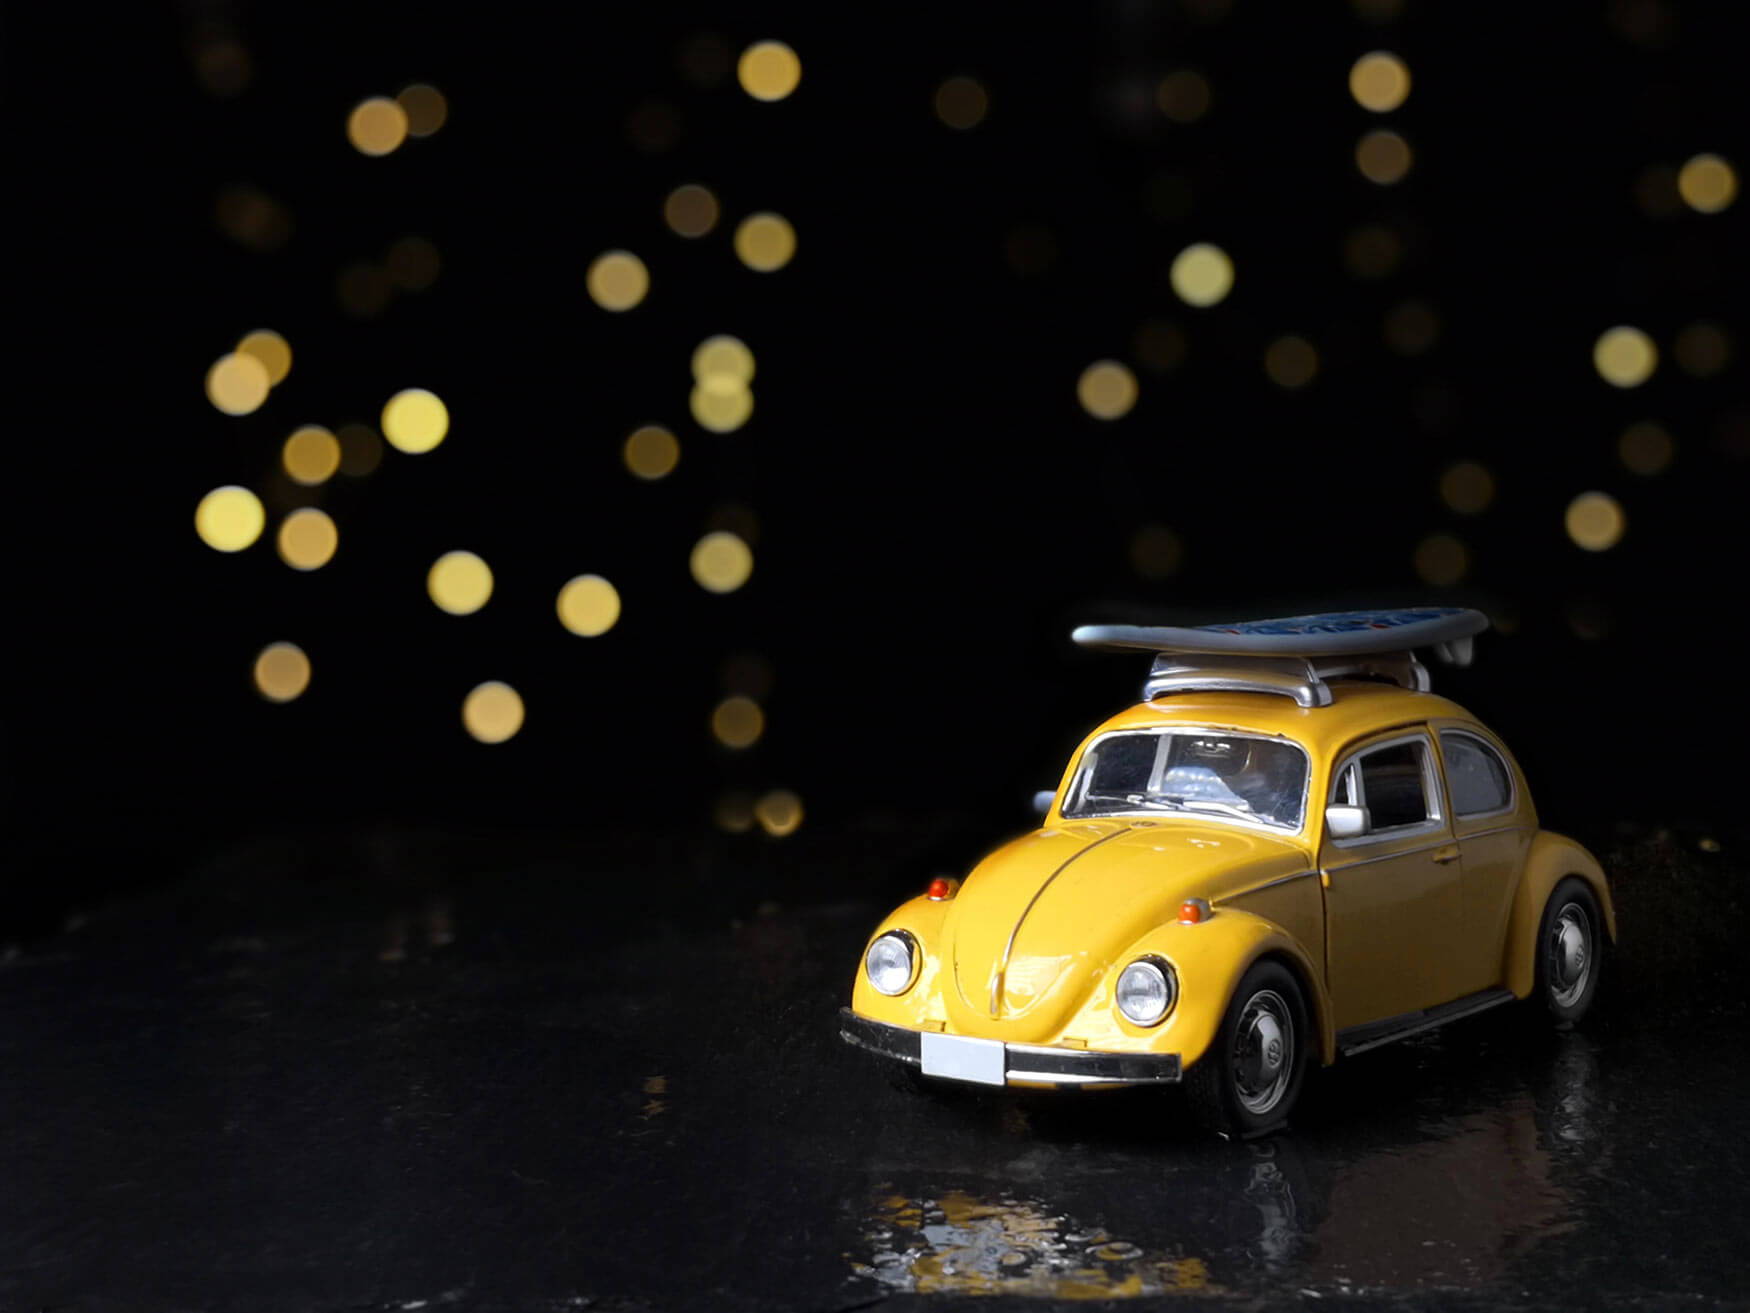 A yellow beatle toy car